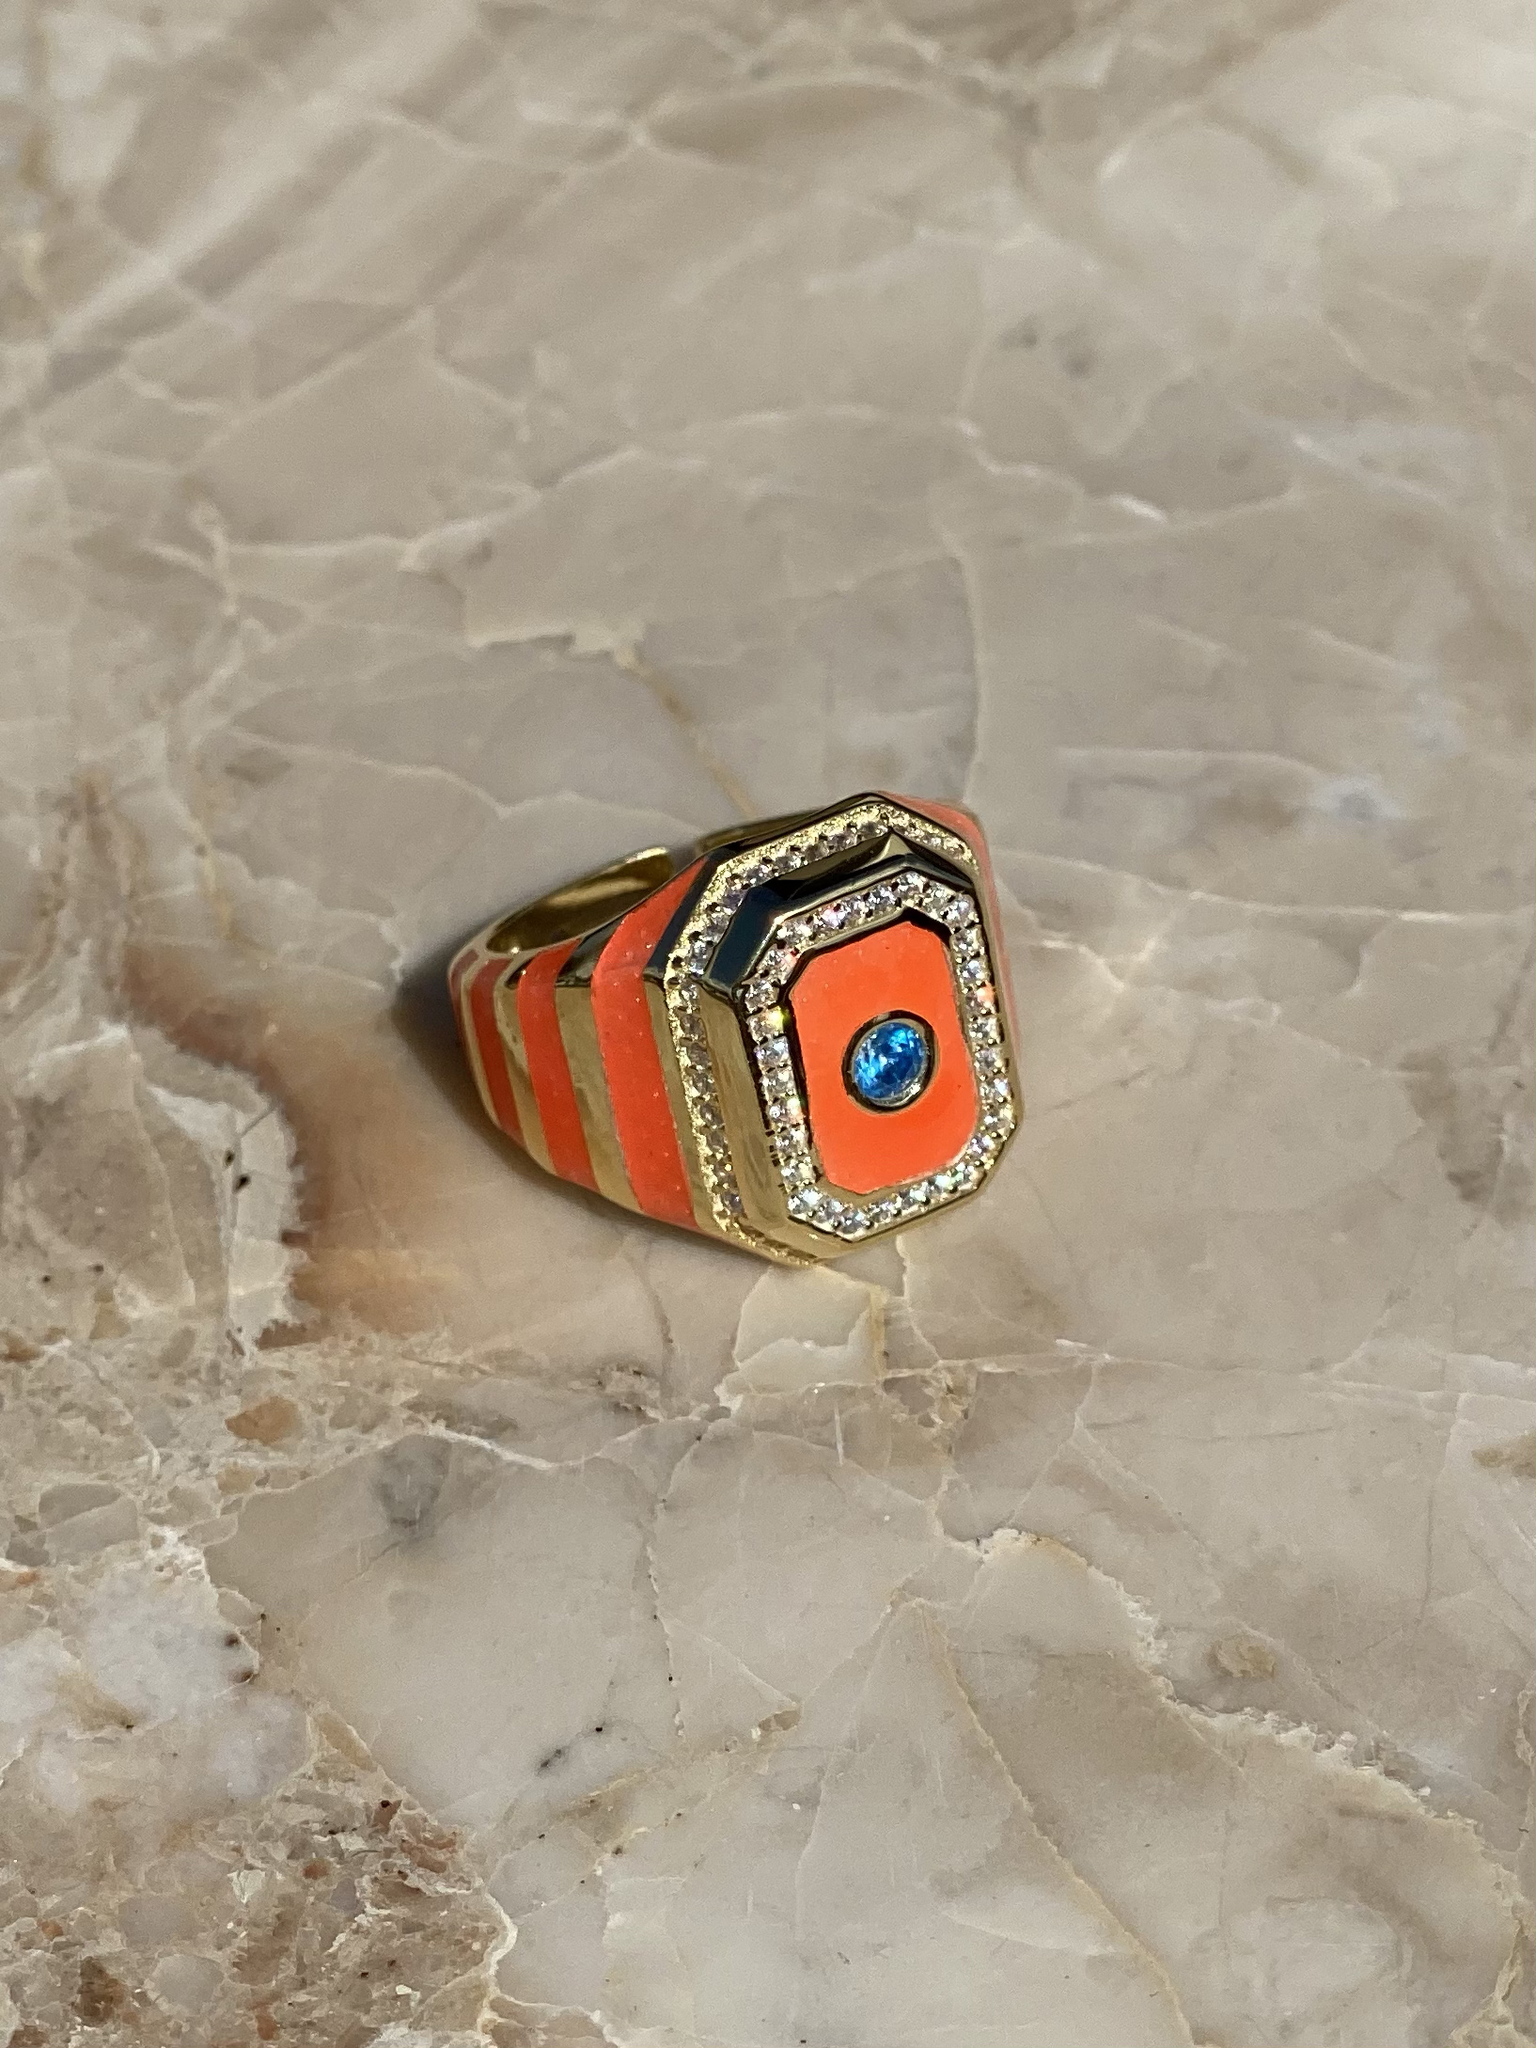 Signet ring in gold plated silver with orange enamel stripes